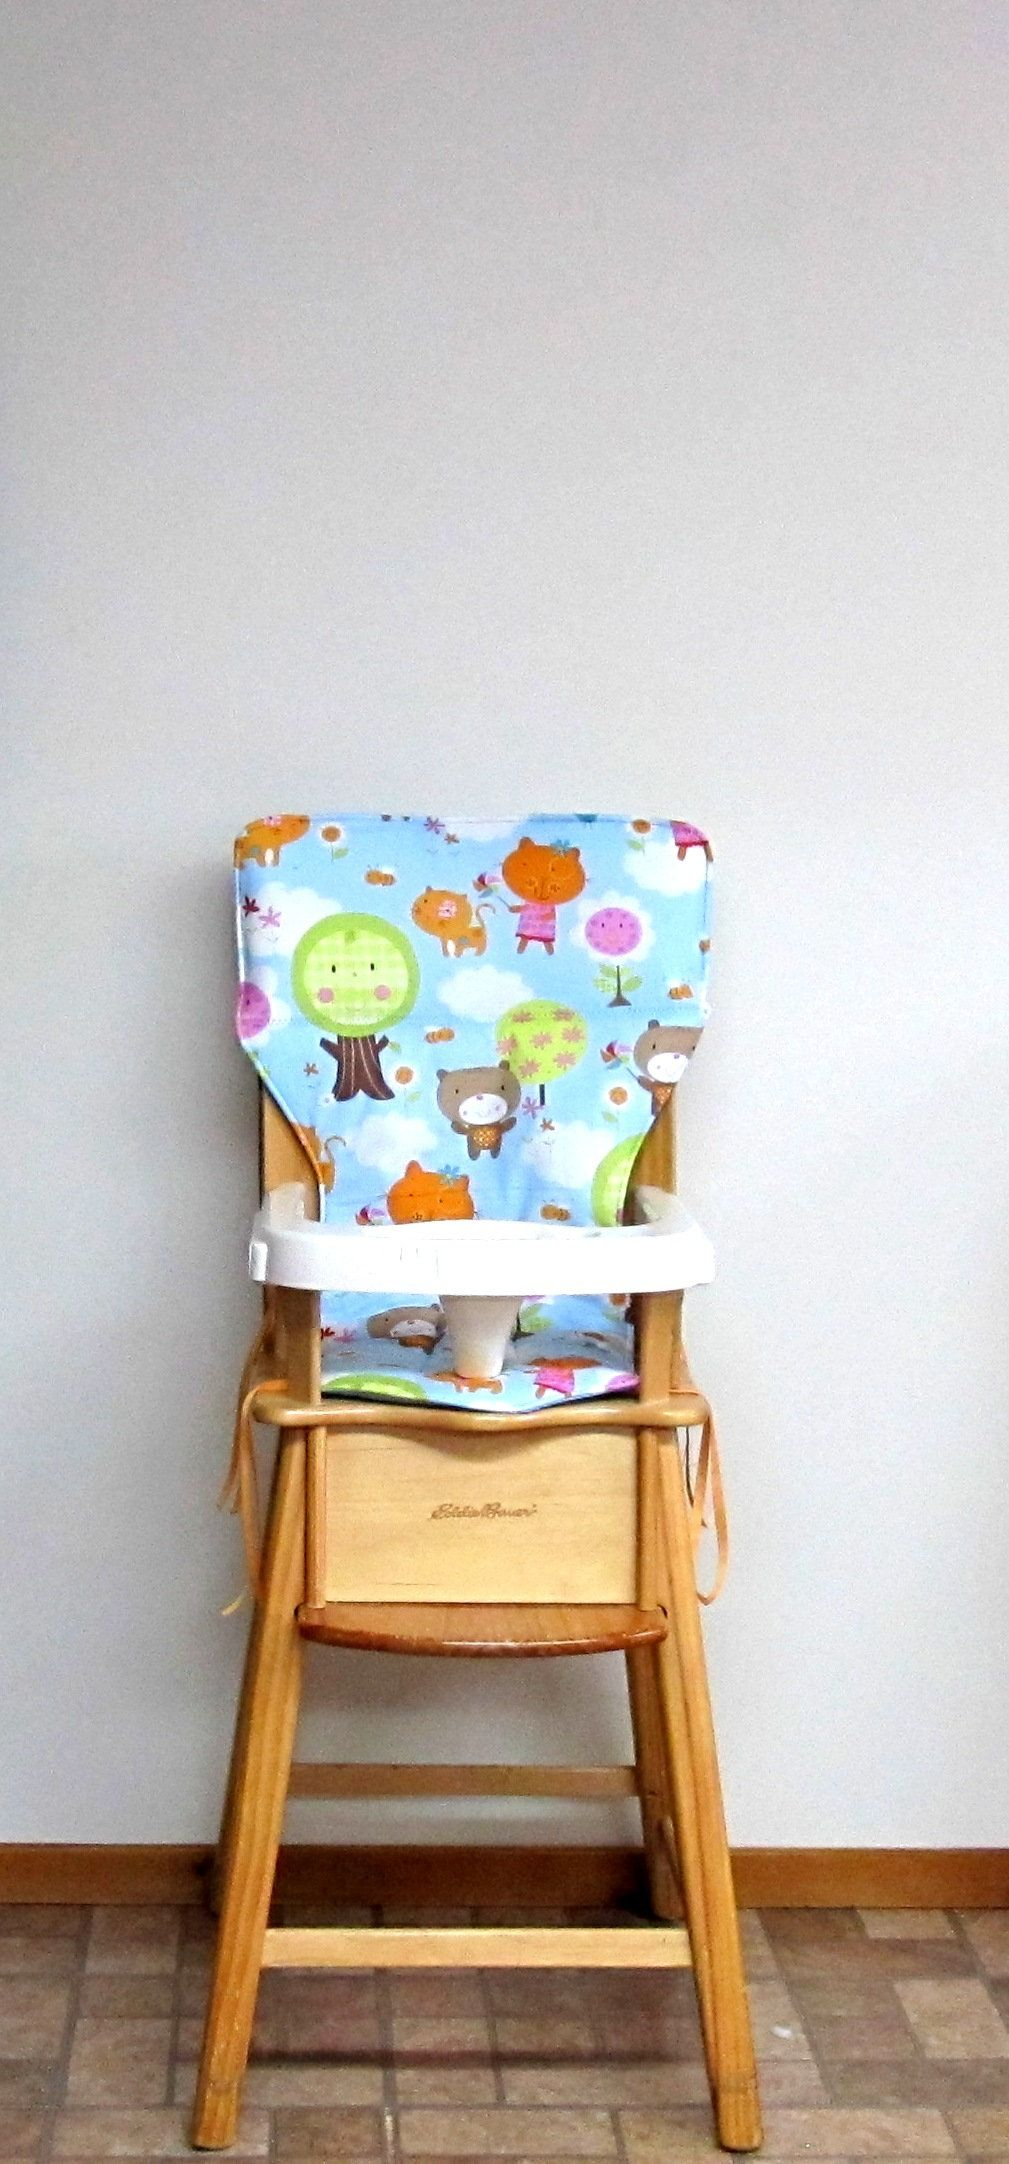 Merveilleux Eddie Bauer Replacement Highchair Cover, Childrens Chair Pad, Kids Furniture  Protector, Baby Accessory